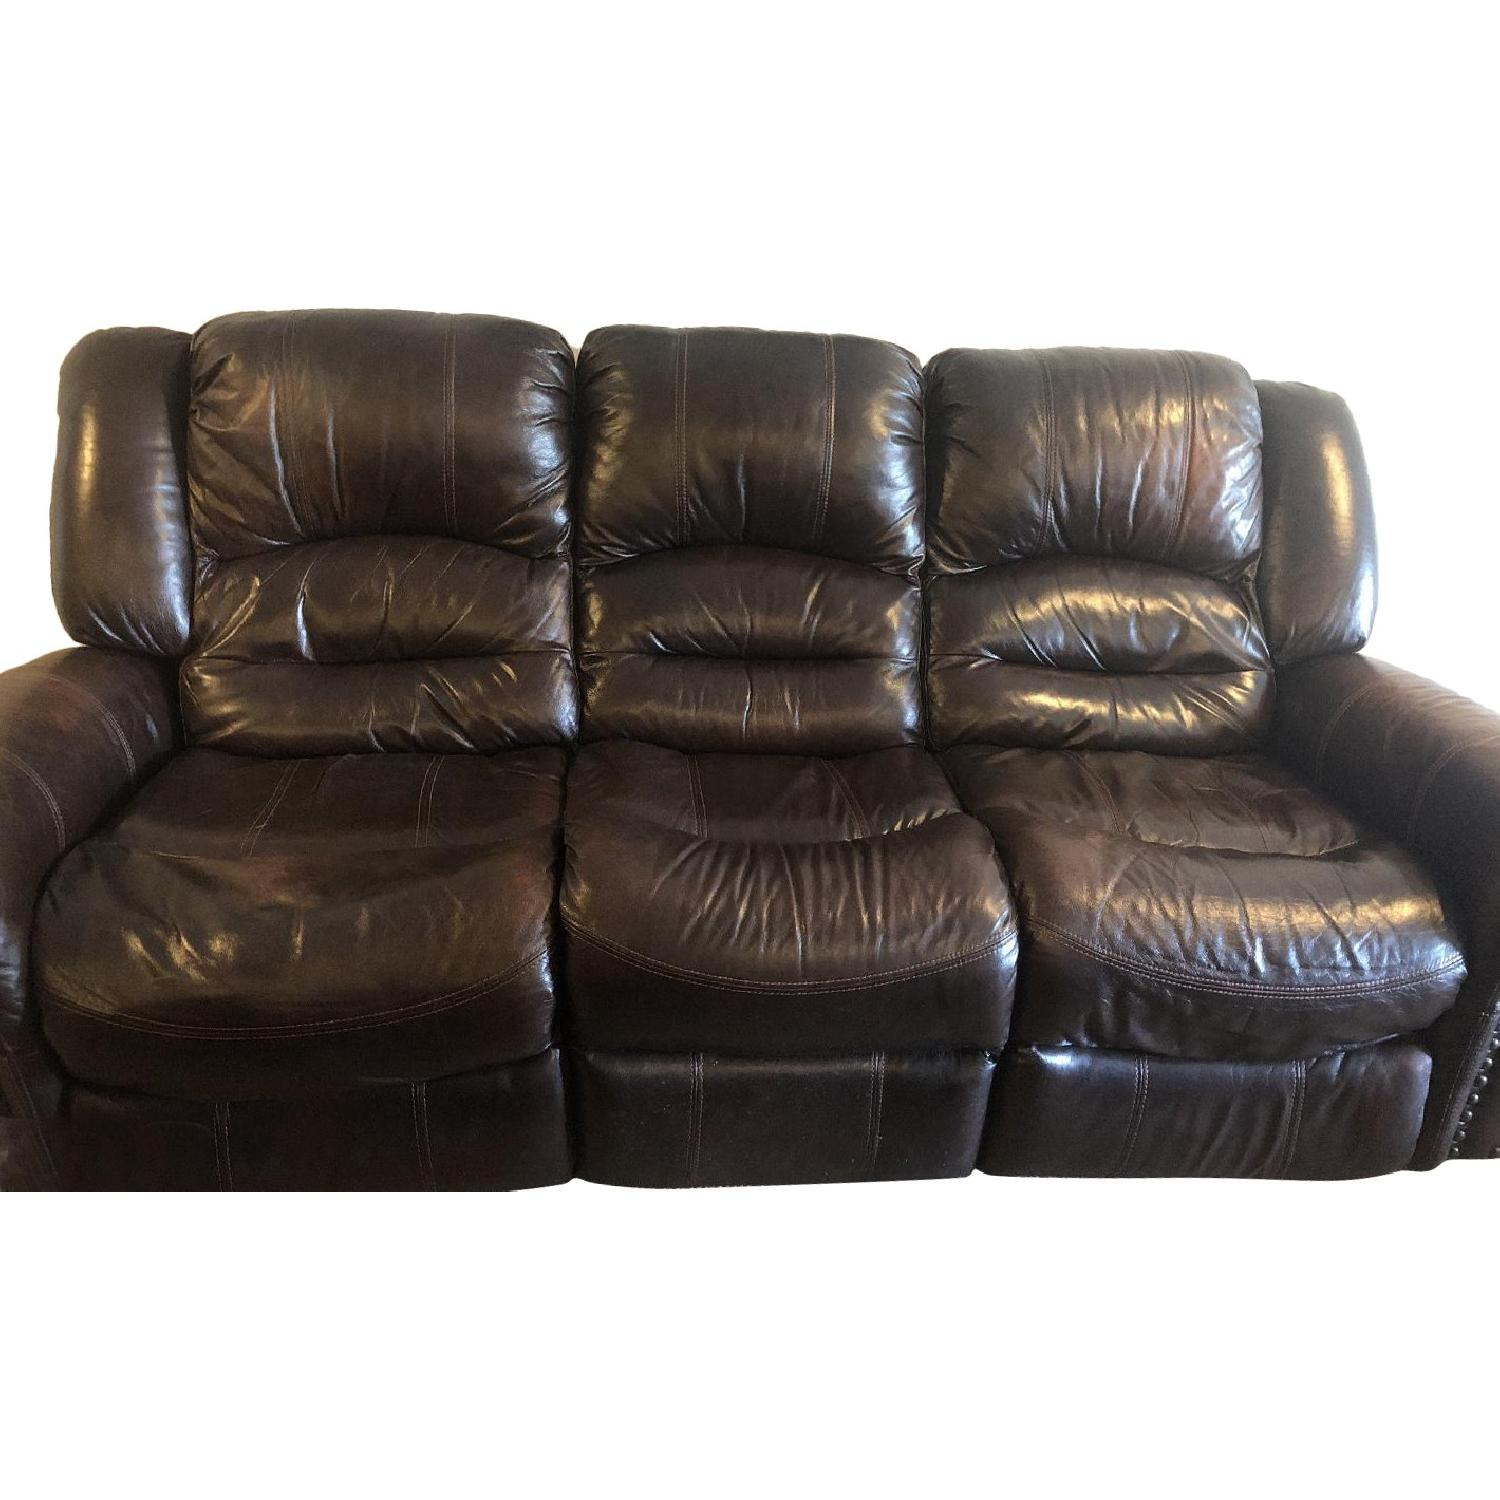 Raymour & Flanigan 3 Seater Leather Electric Recliner - AptDeco